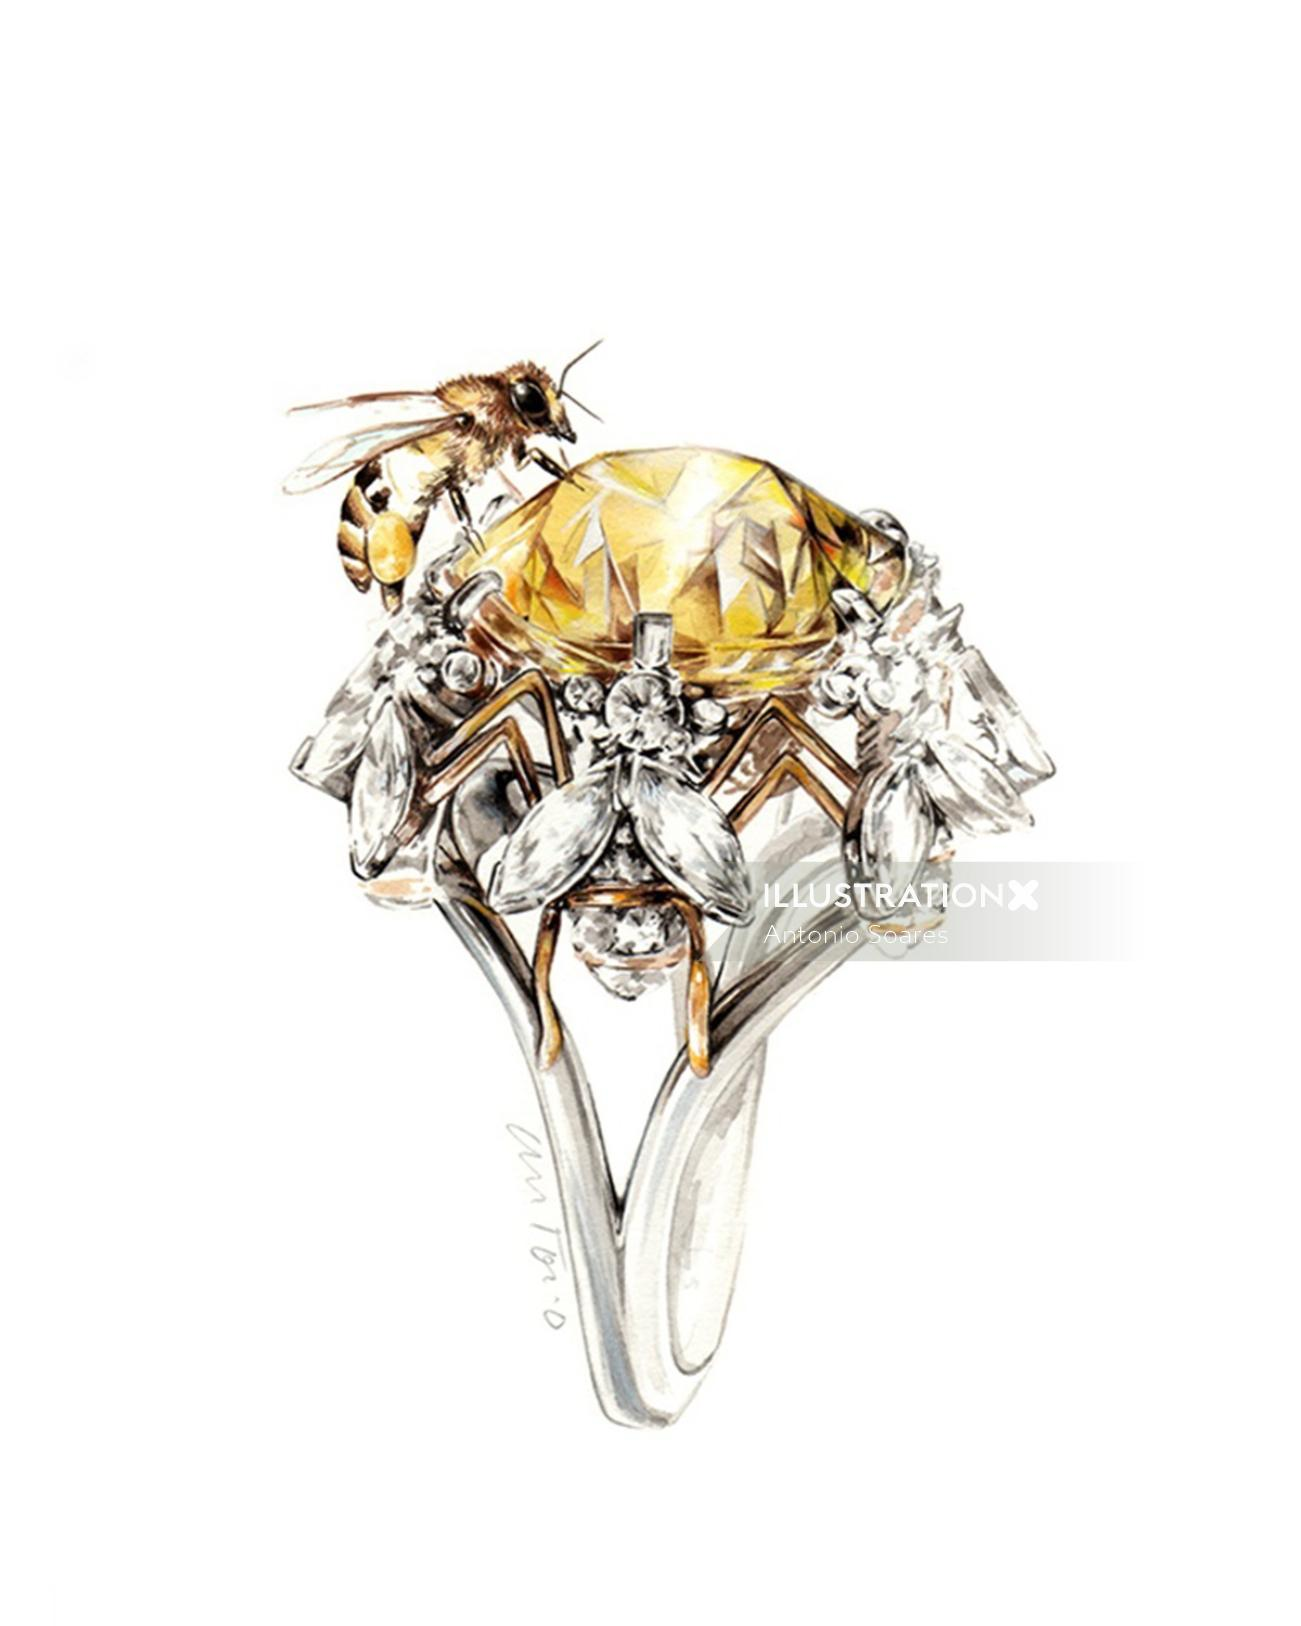 illustration of a beautiful diamond ring and honey bee on it, Inspired from Jean Schlumberger works